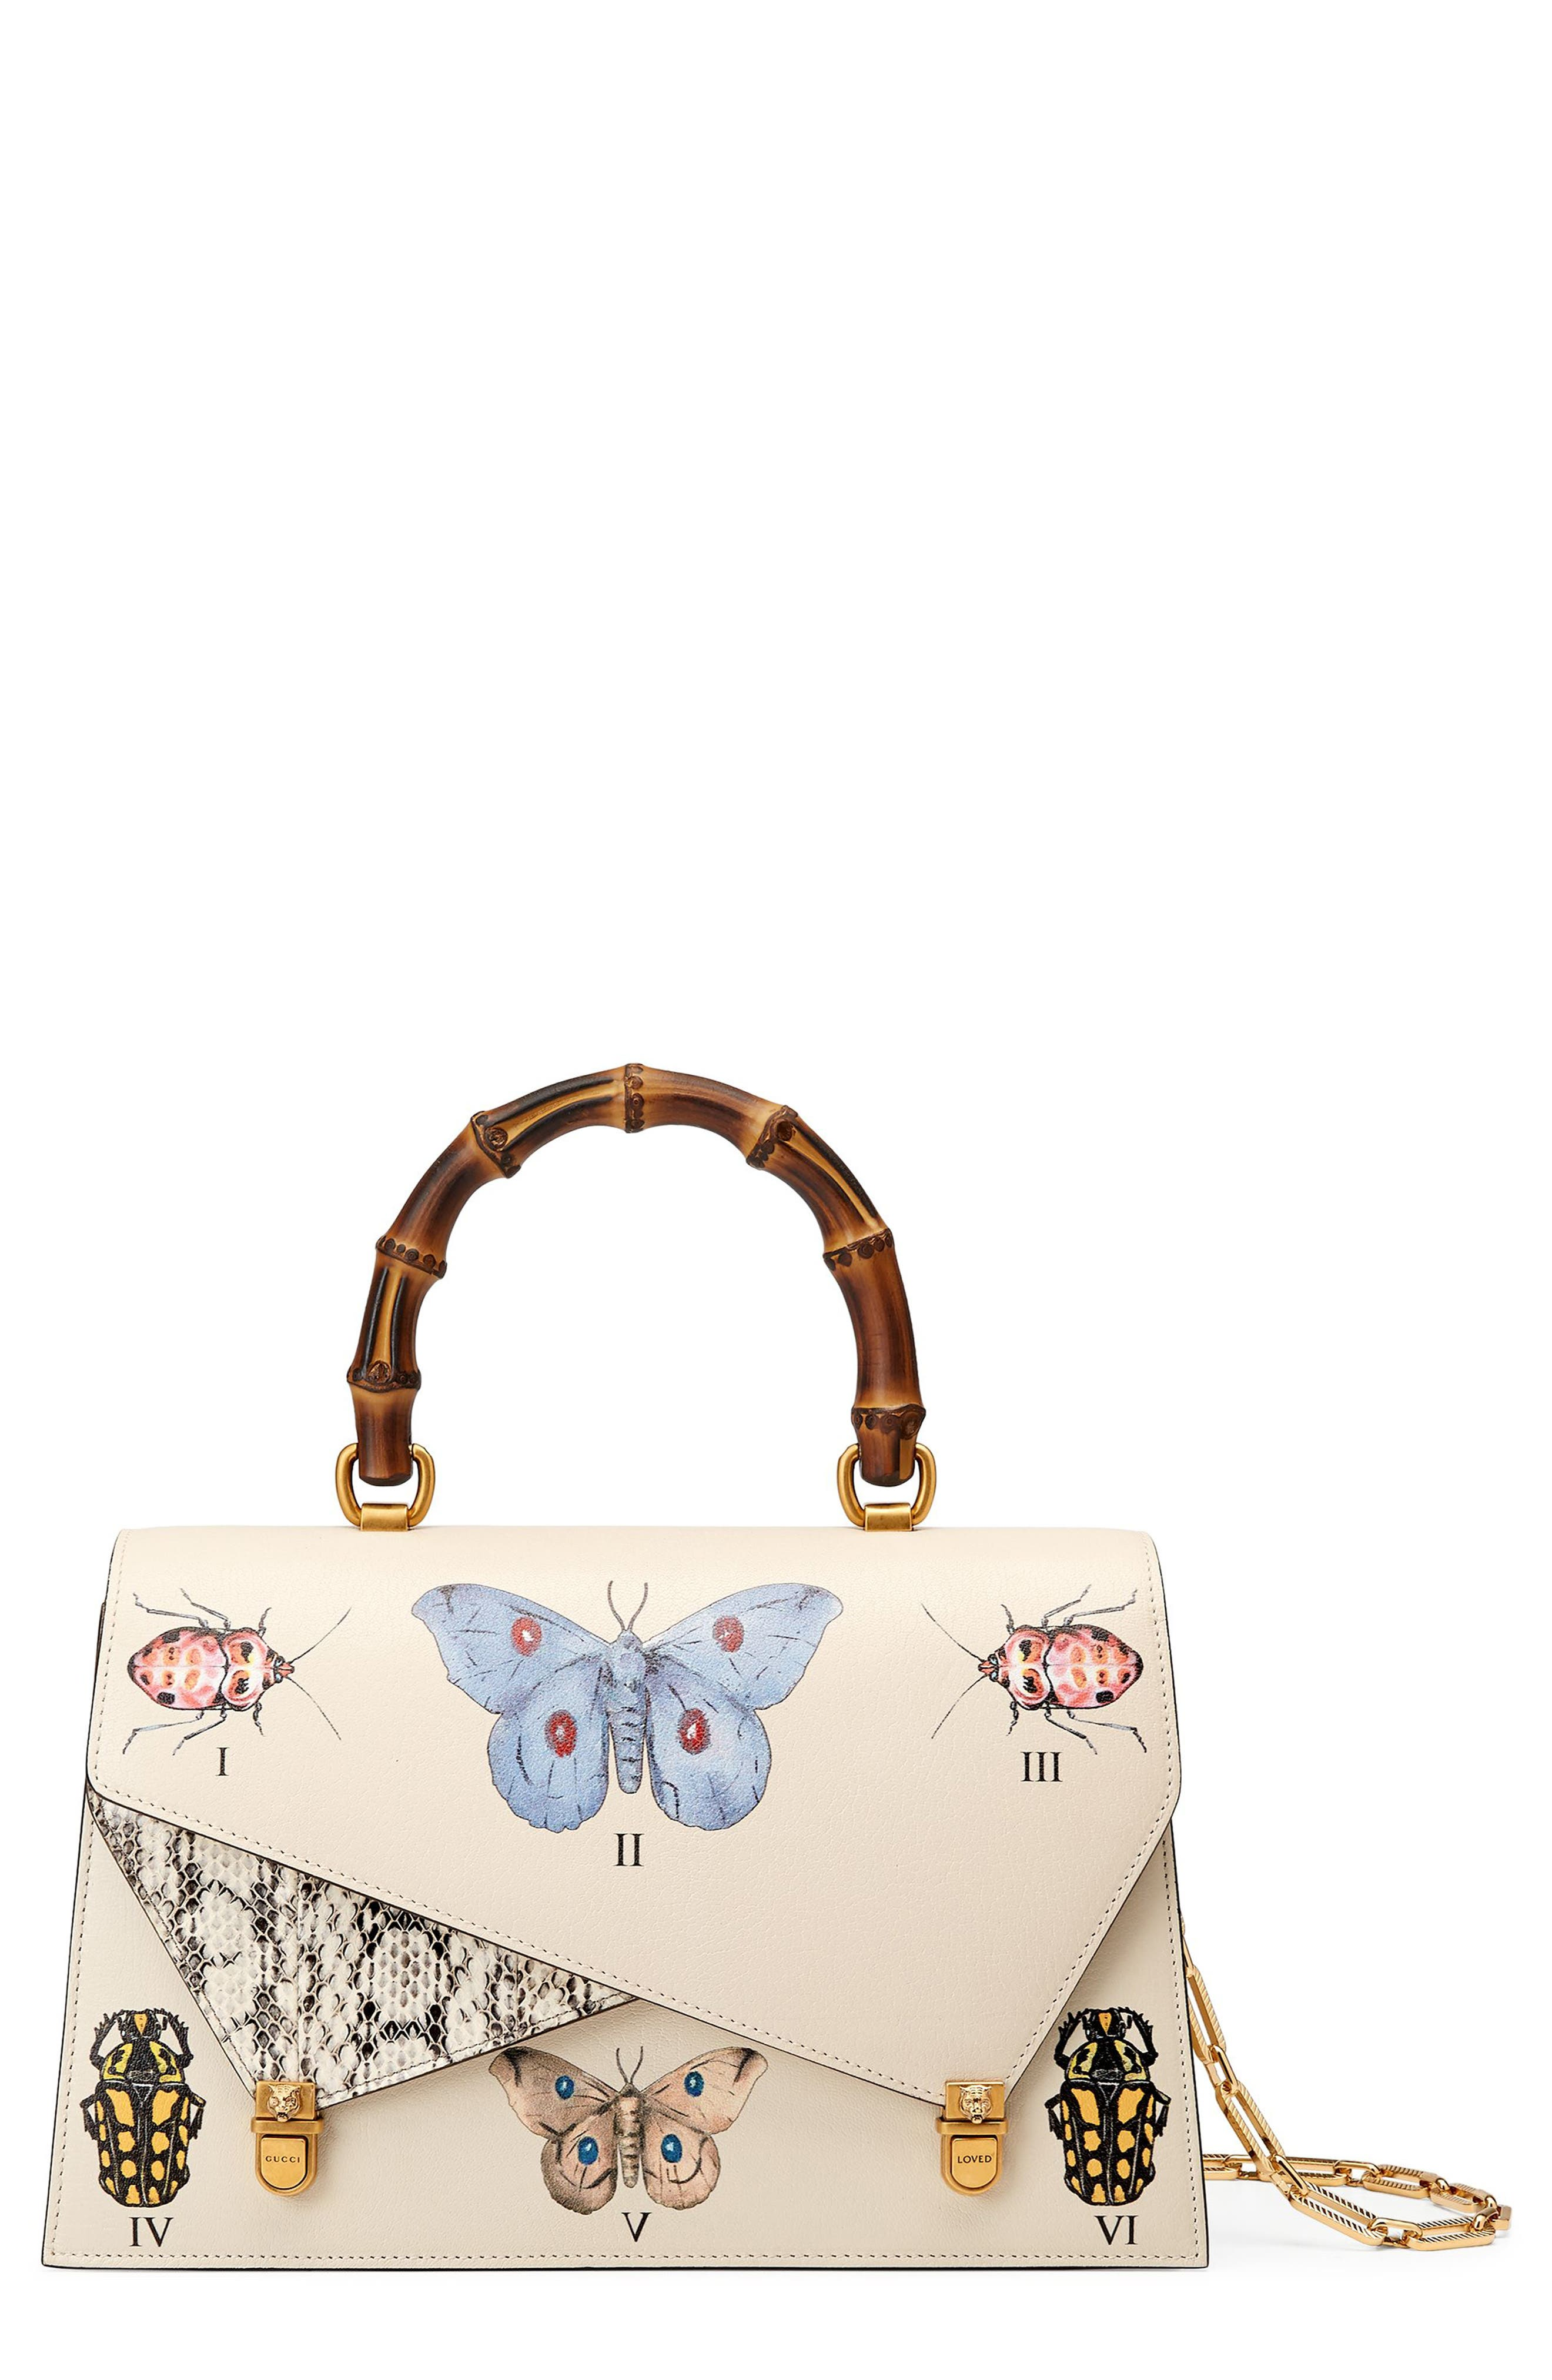 Medium Linea P Butterfly Painted Leather & Genuine Snakeskin Top Handle Satchel,                         Main,                         color, White/ Multi